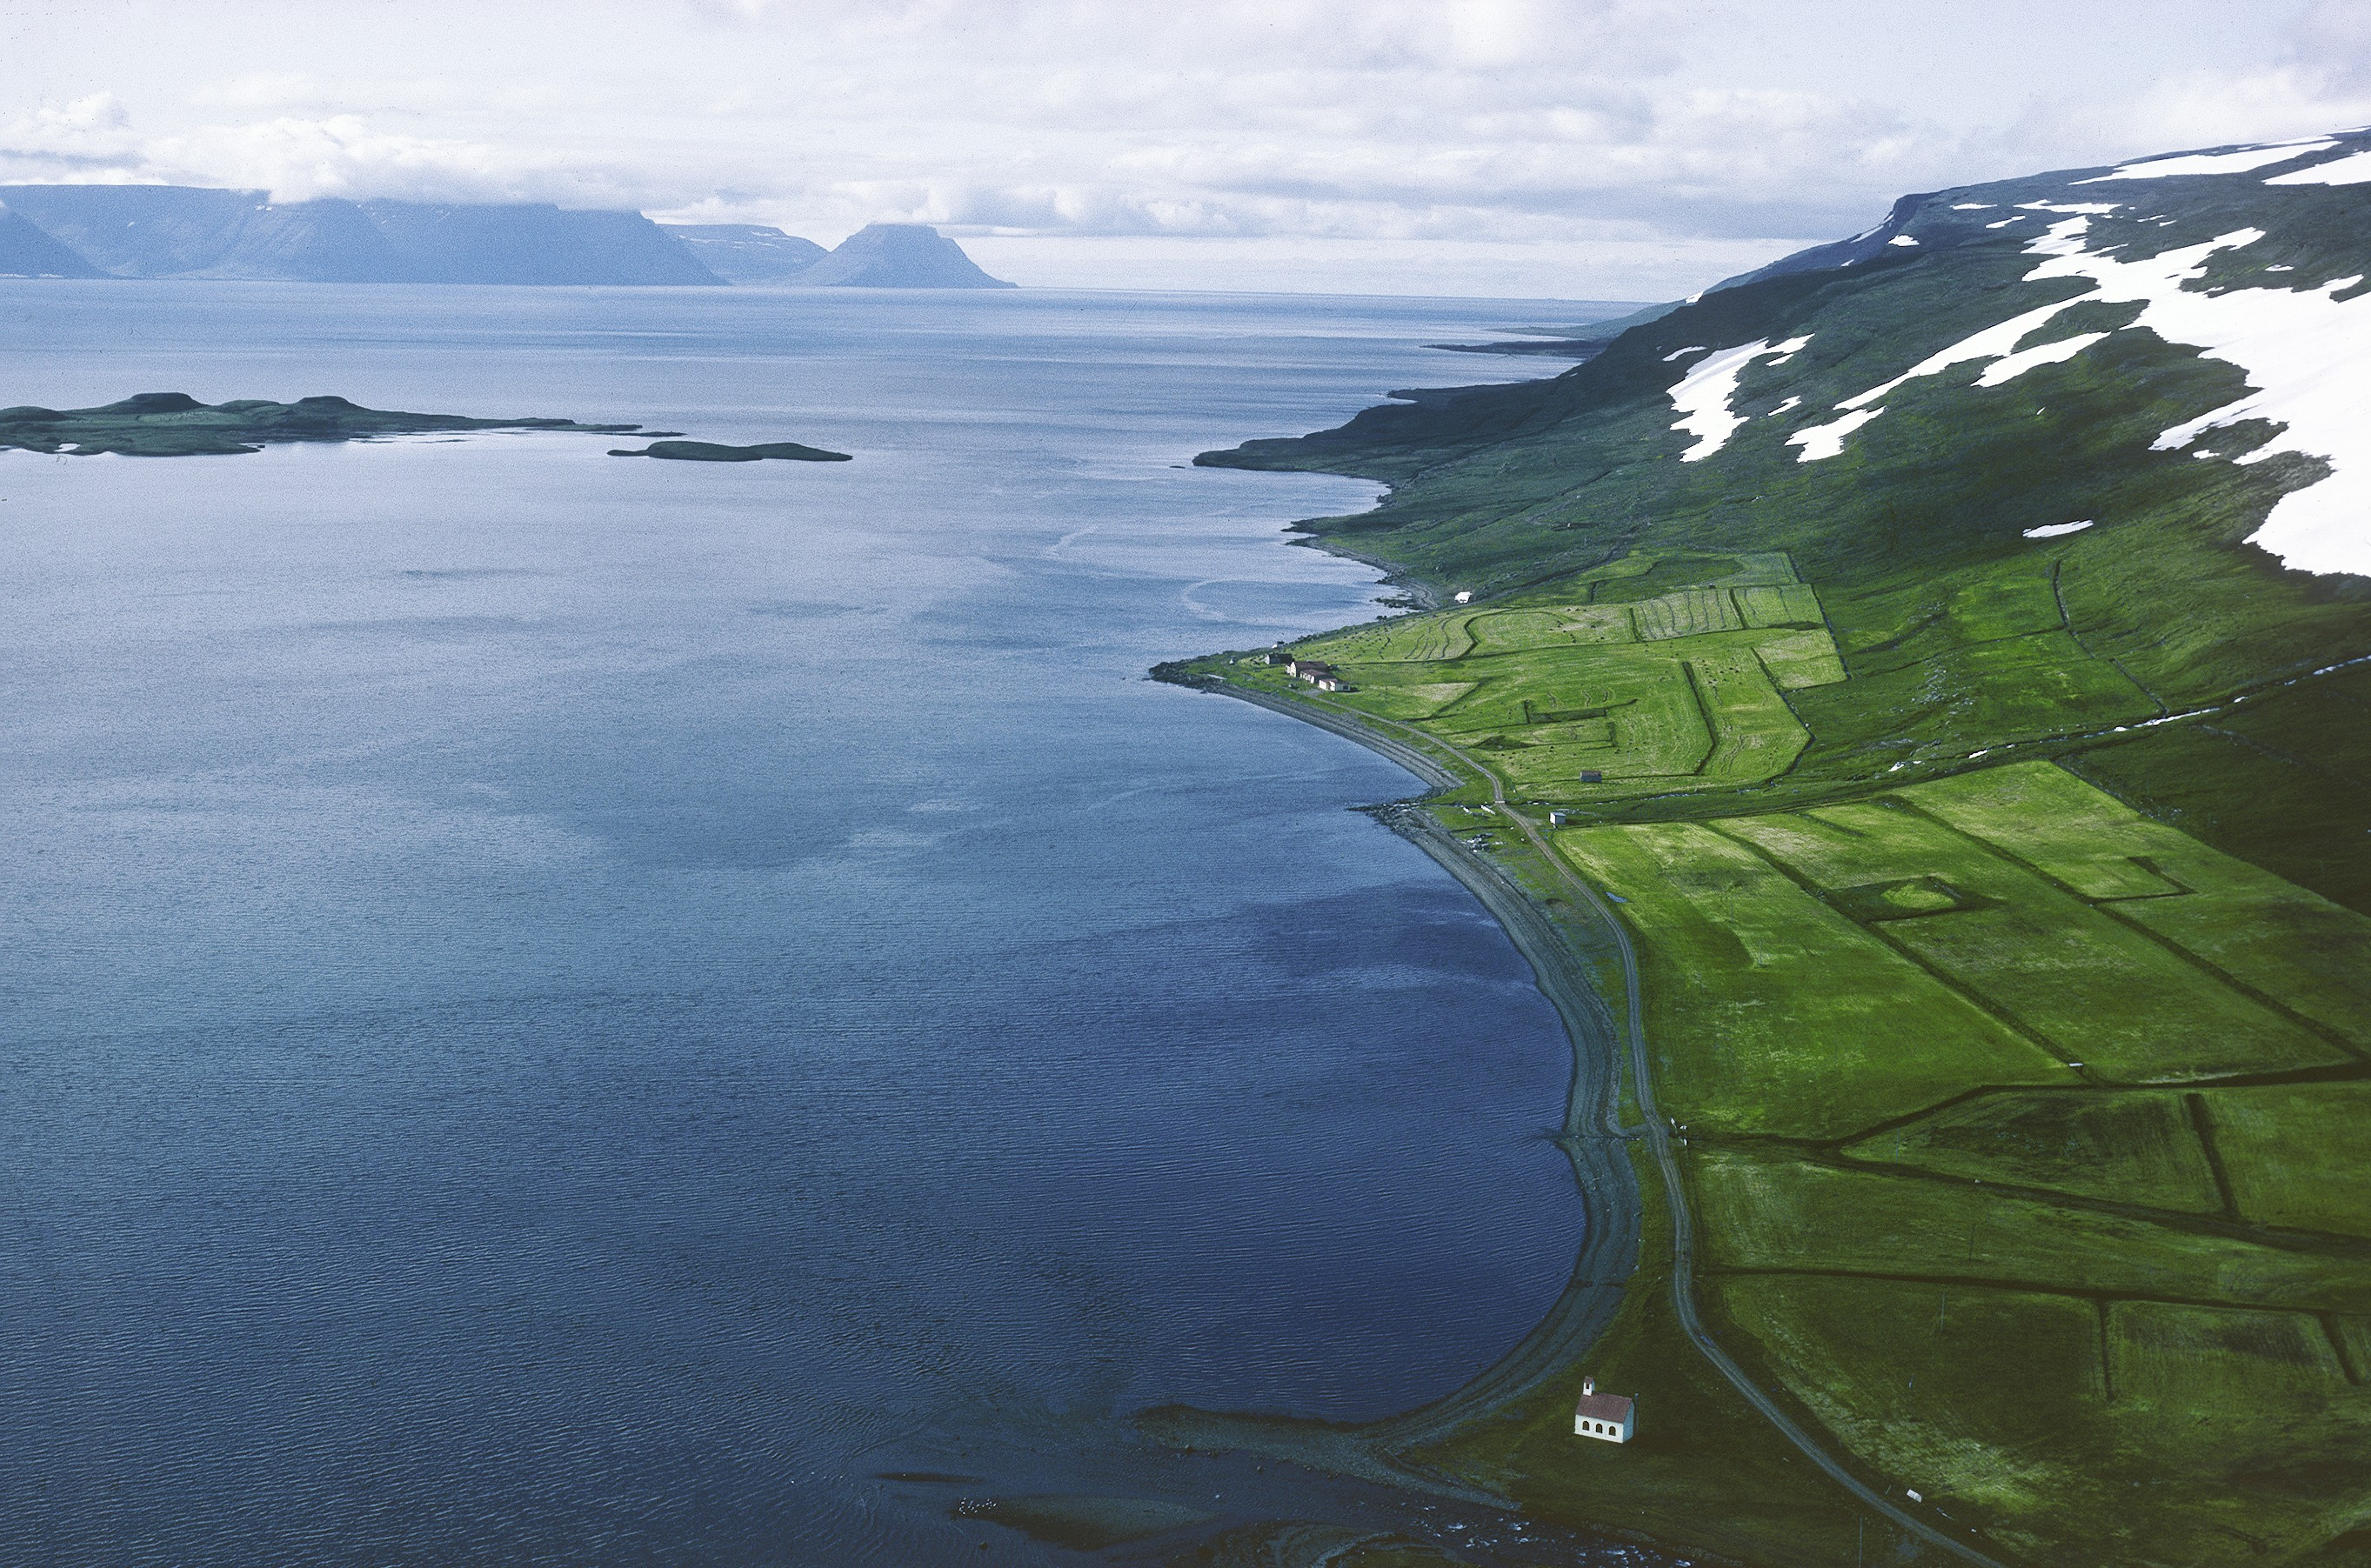 Snaefjallastrond - Aedey icelandic times